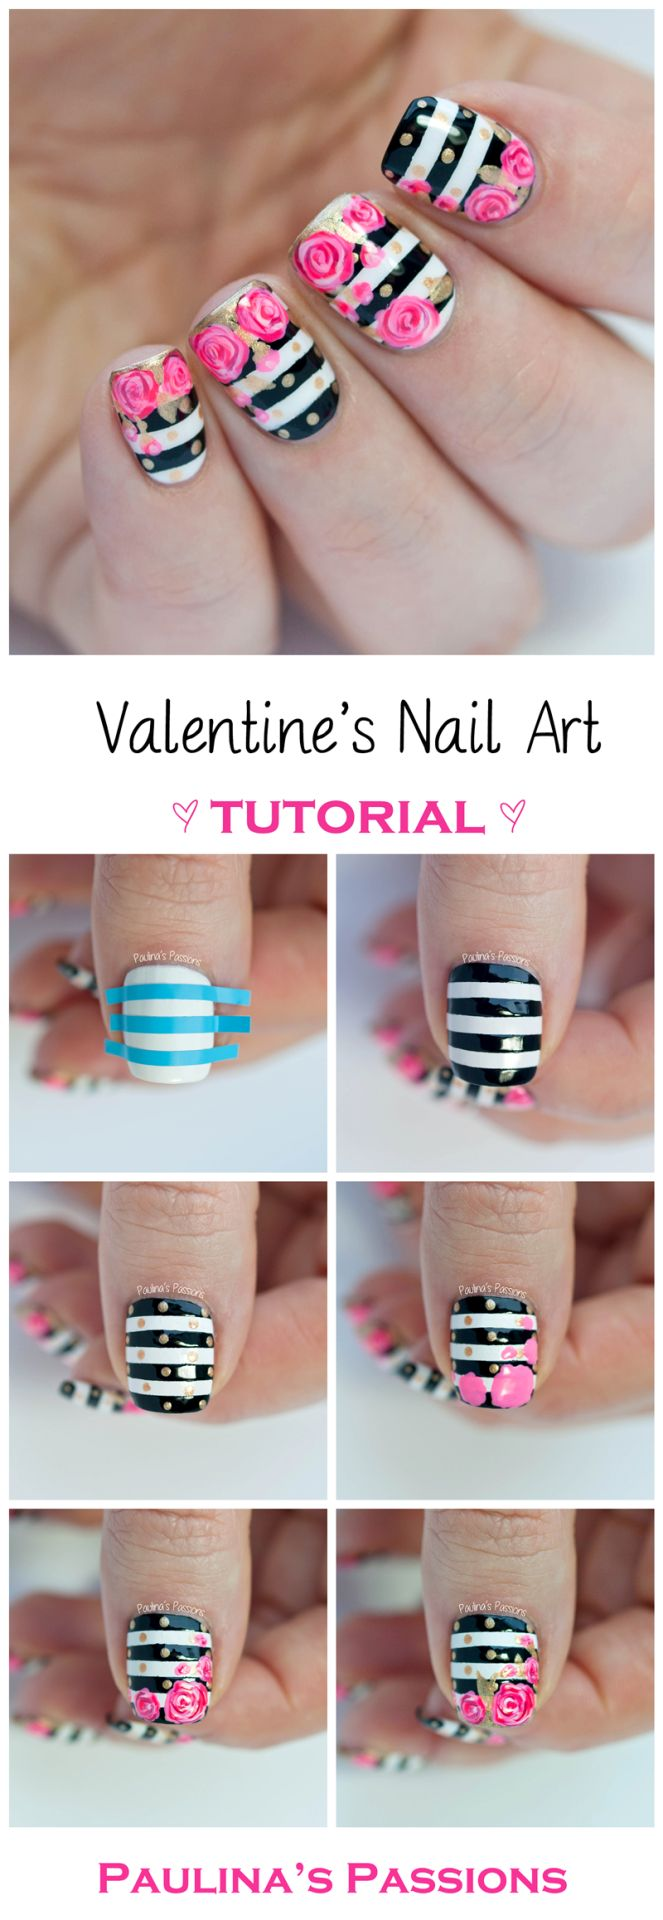 Valentine's Nail Art tutorial on the blog: http://paulinaspassions.com/valentines-roses-nail-art-tutorial/